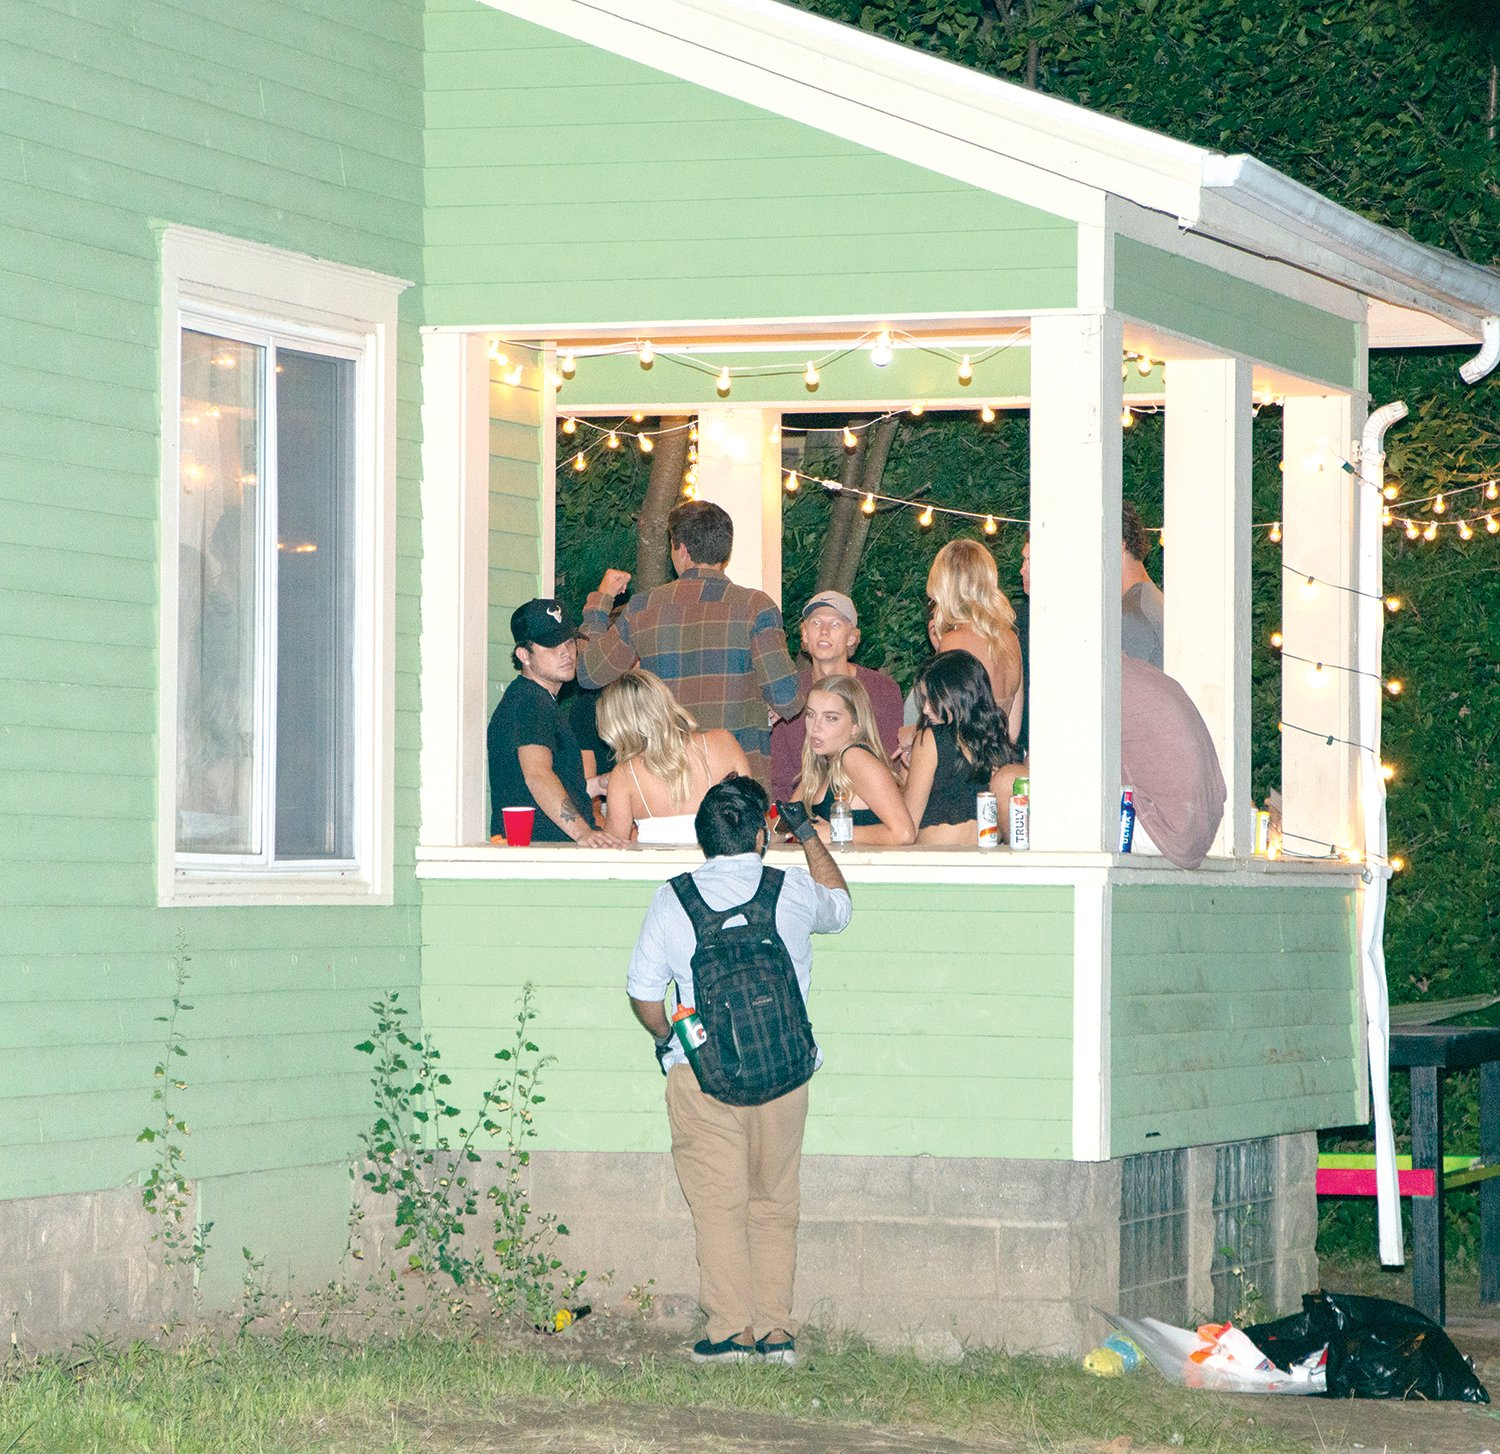 Stephens also checked In on several crowded and noisy house parties on Saturday to remind students about social distancing and the 25-person limit on outdoor gatherings.